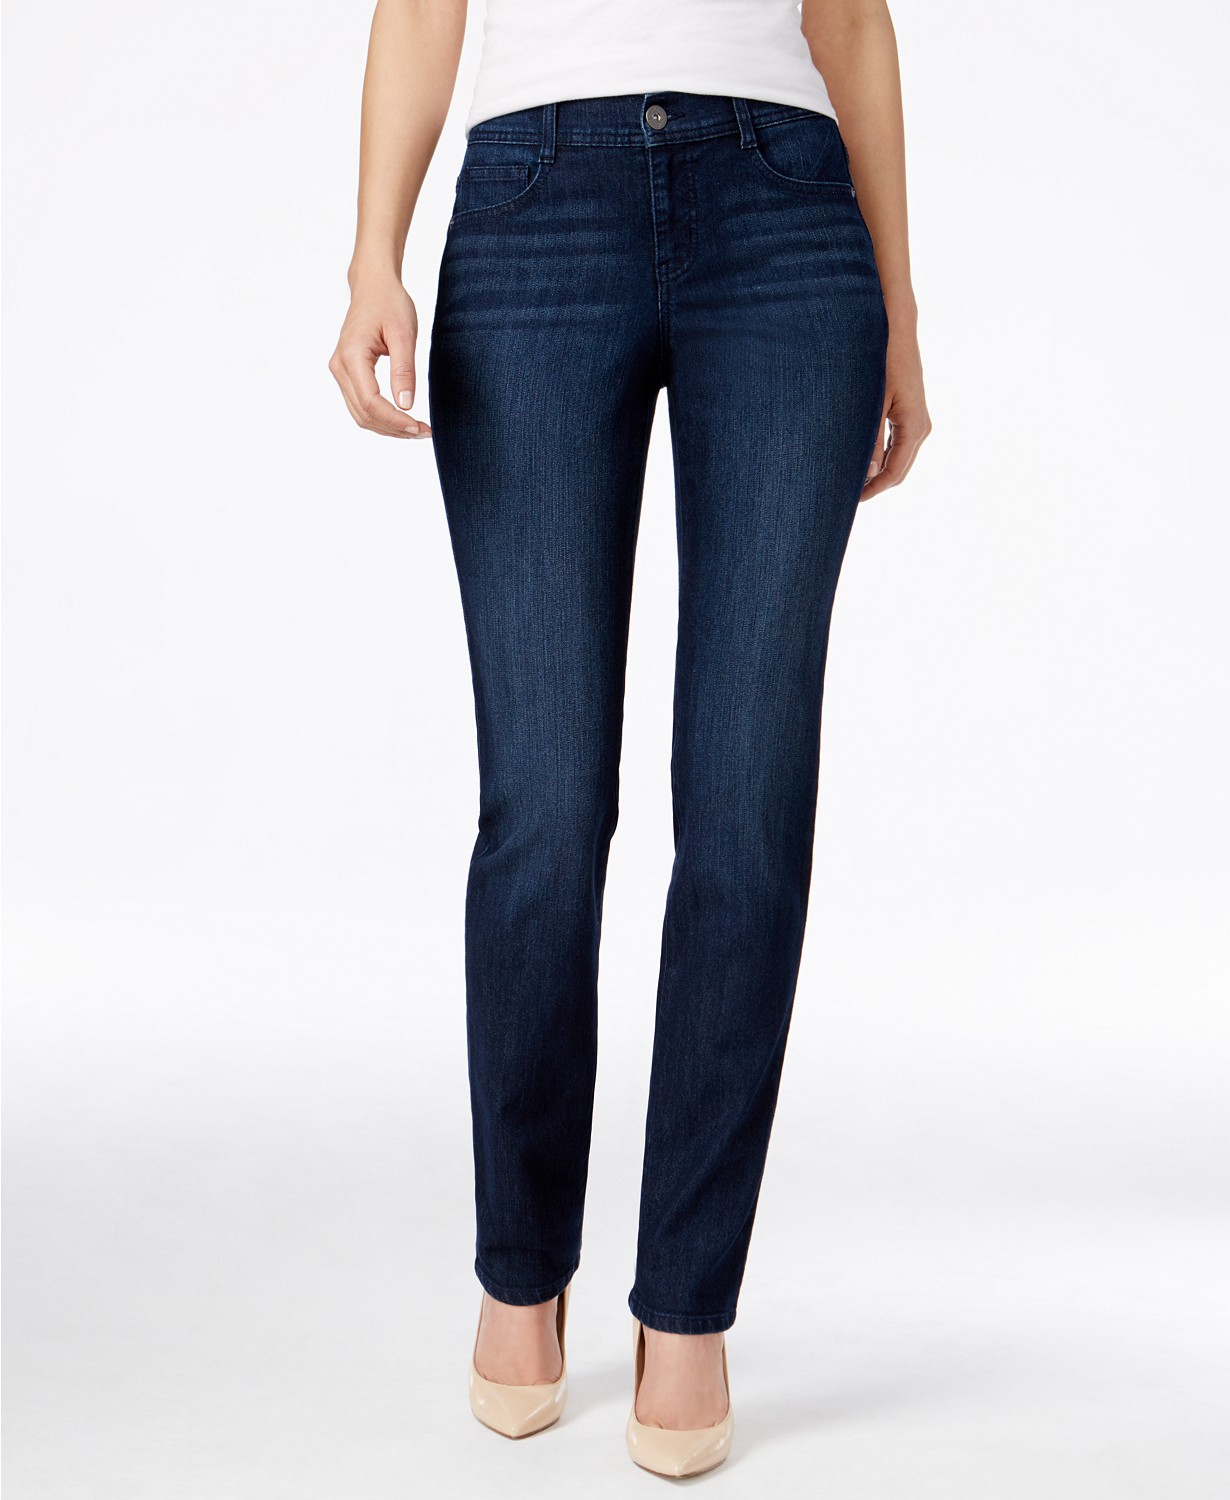 High rise jeans with nude heels